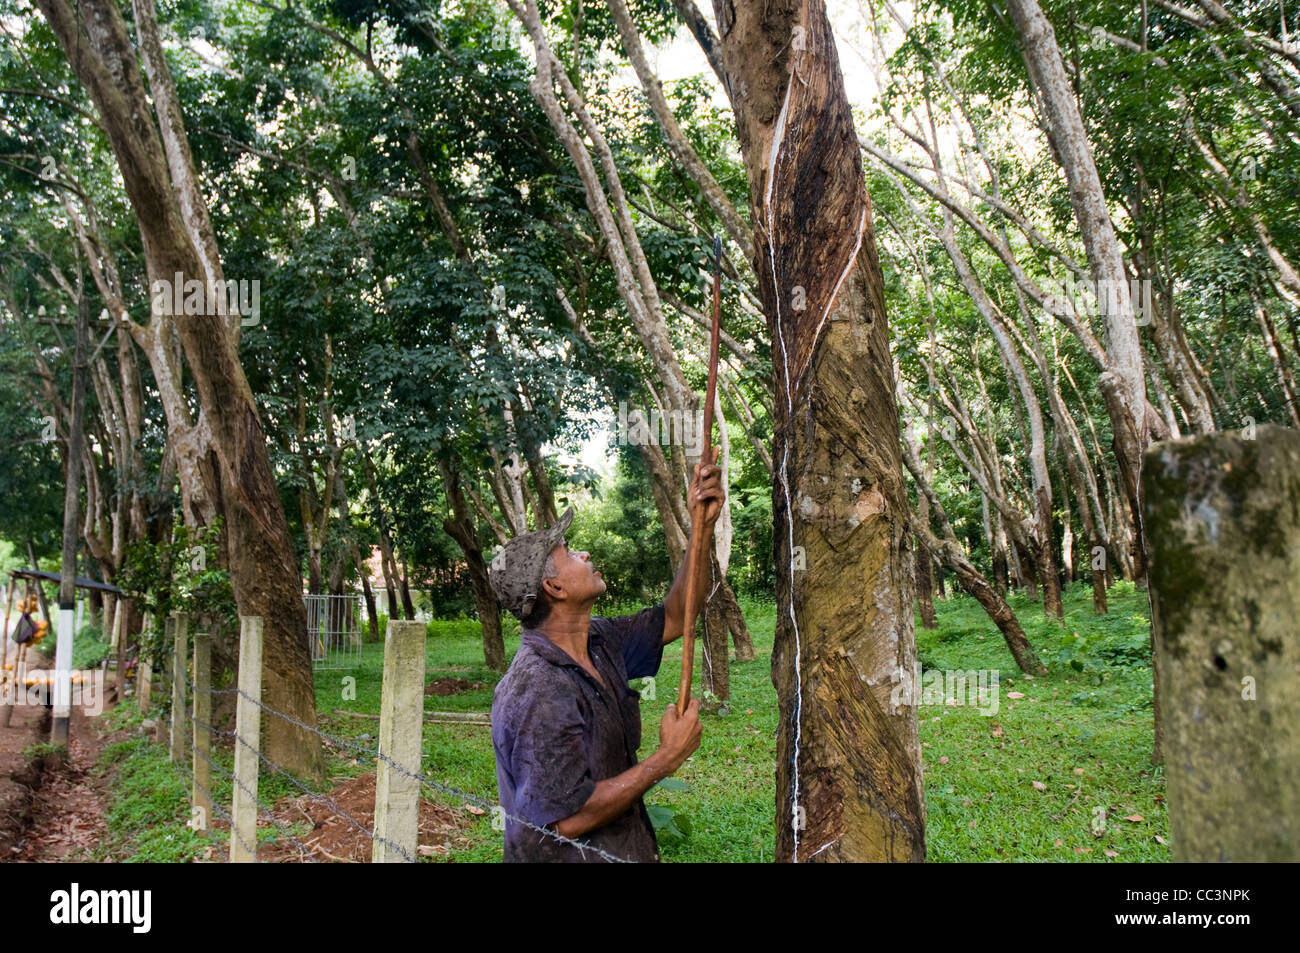 Worker tapping natural rubber from in a rubber tree plantation in Sri Lanka. Stock Photo